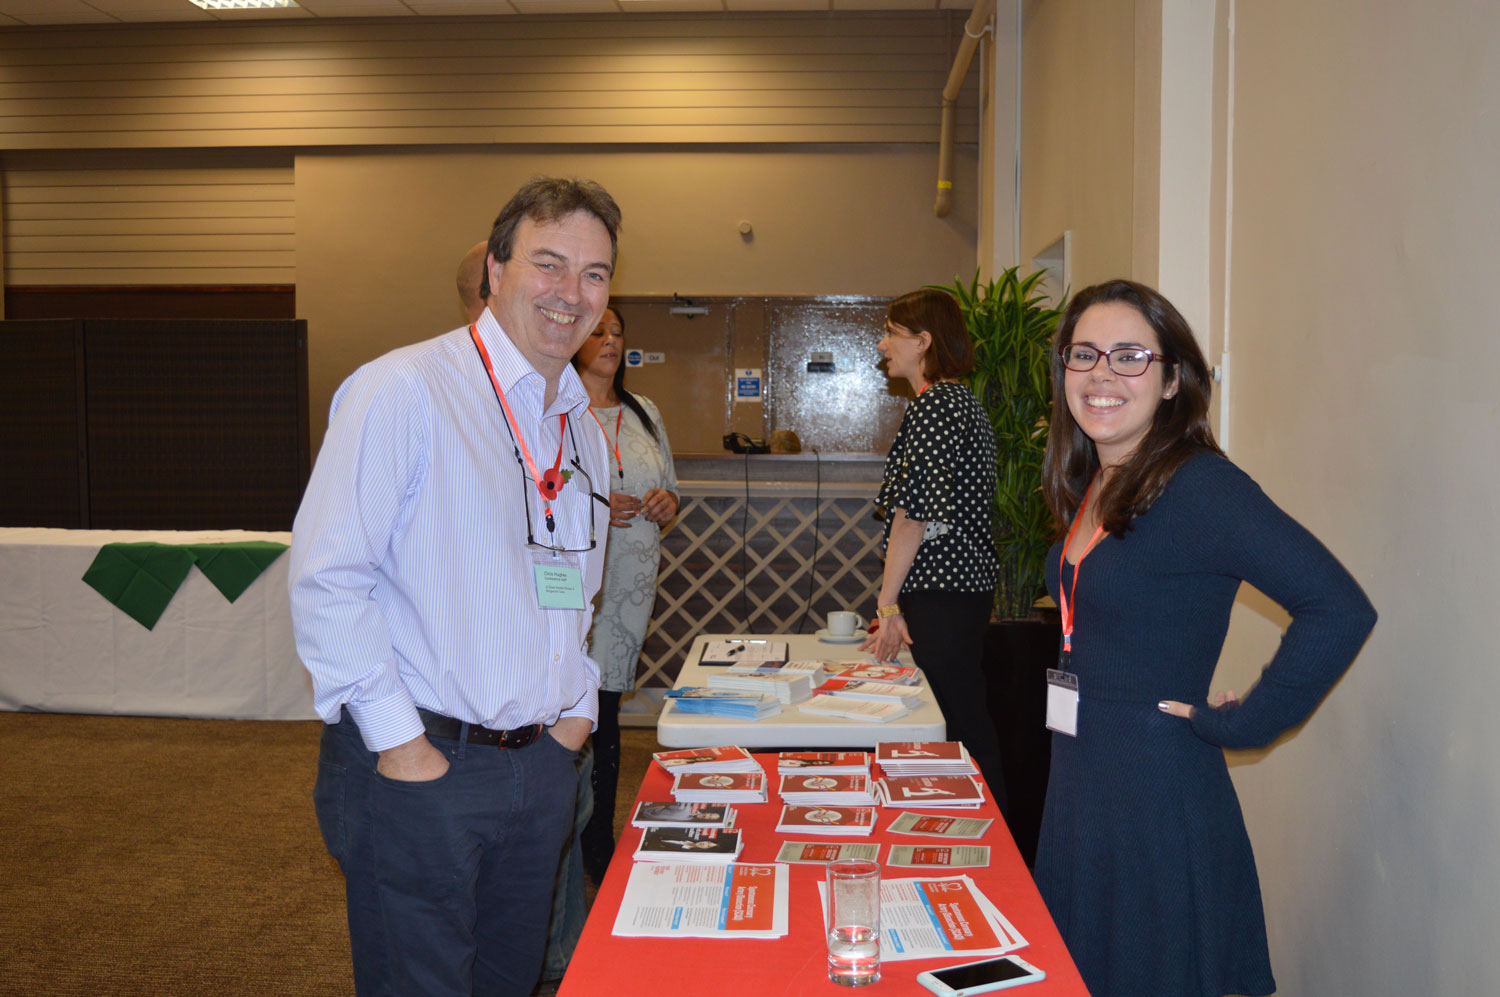 The BHF provided useful information for delegates, family and friends